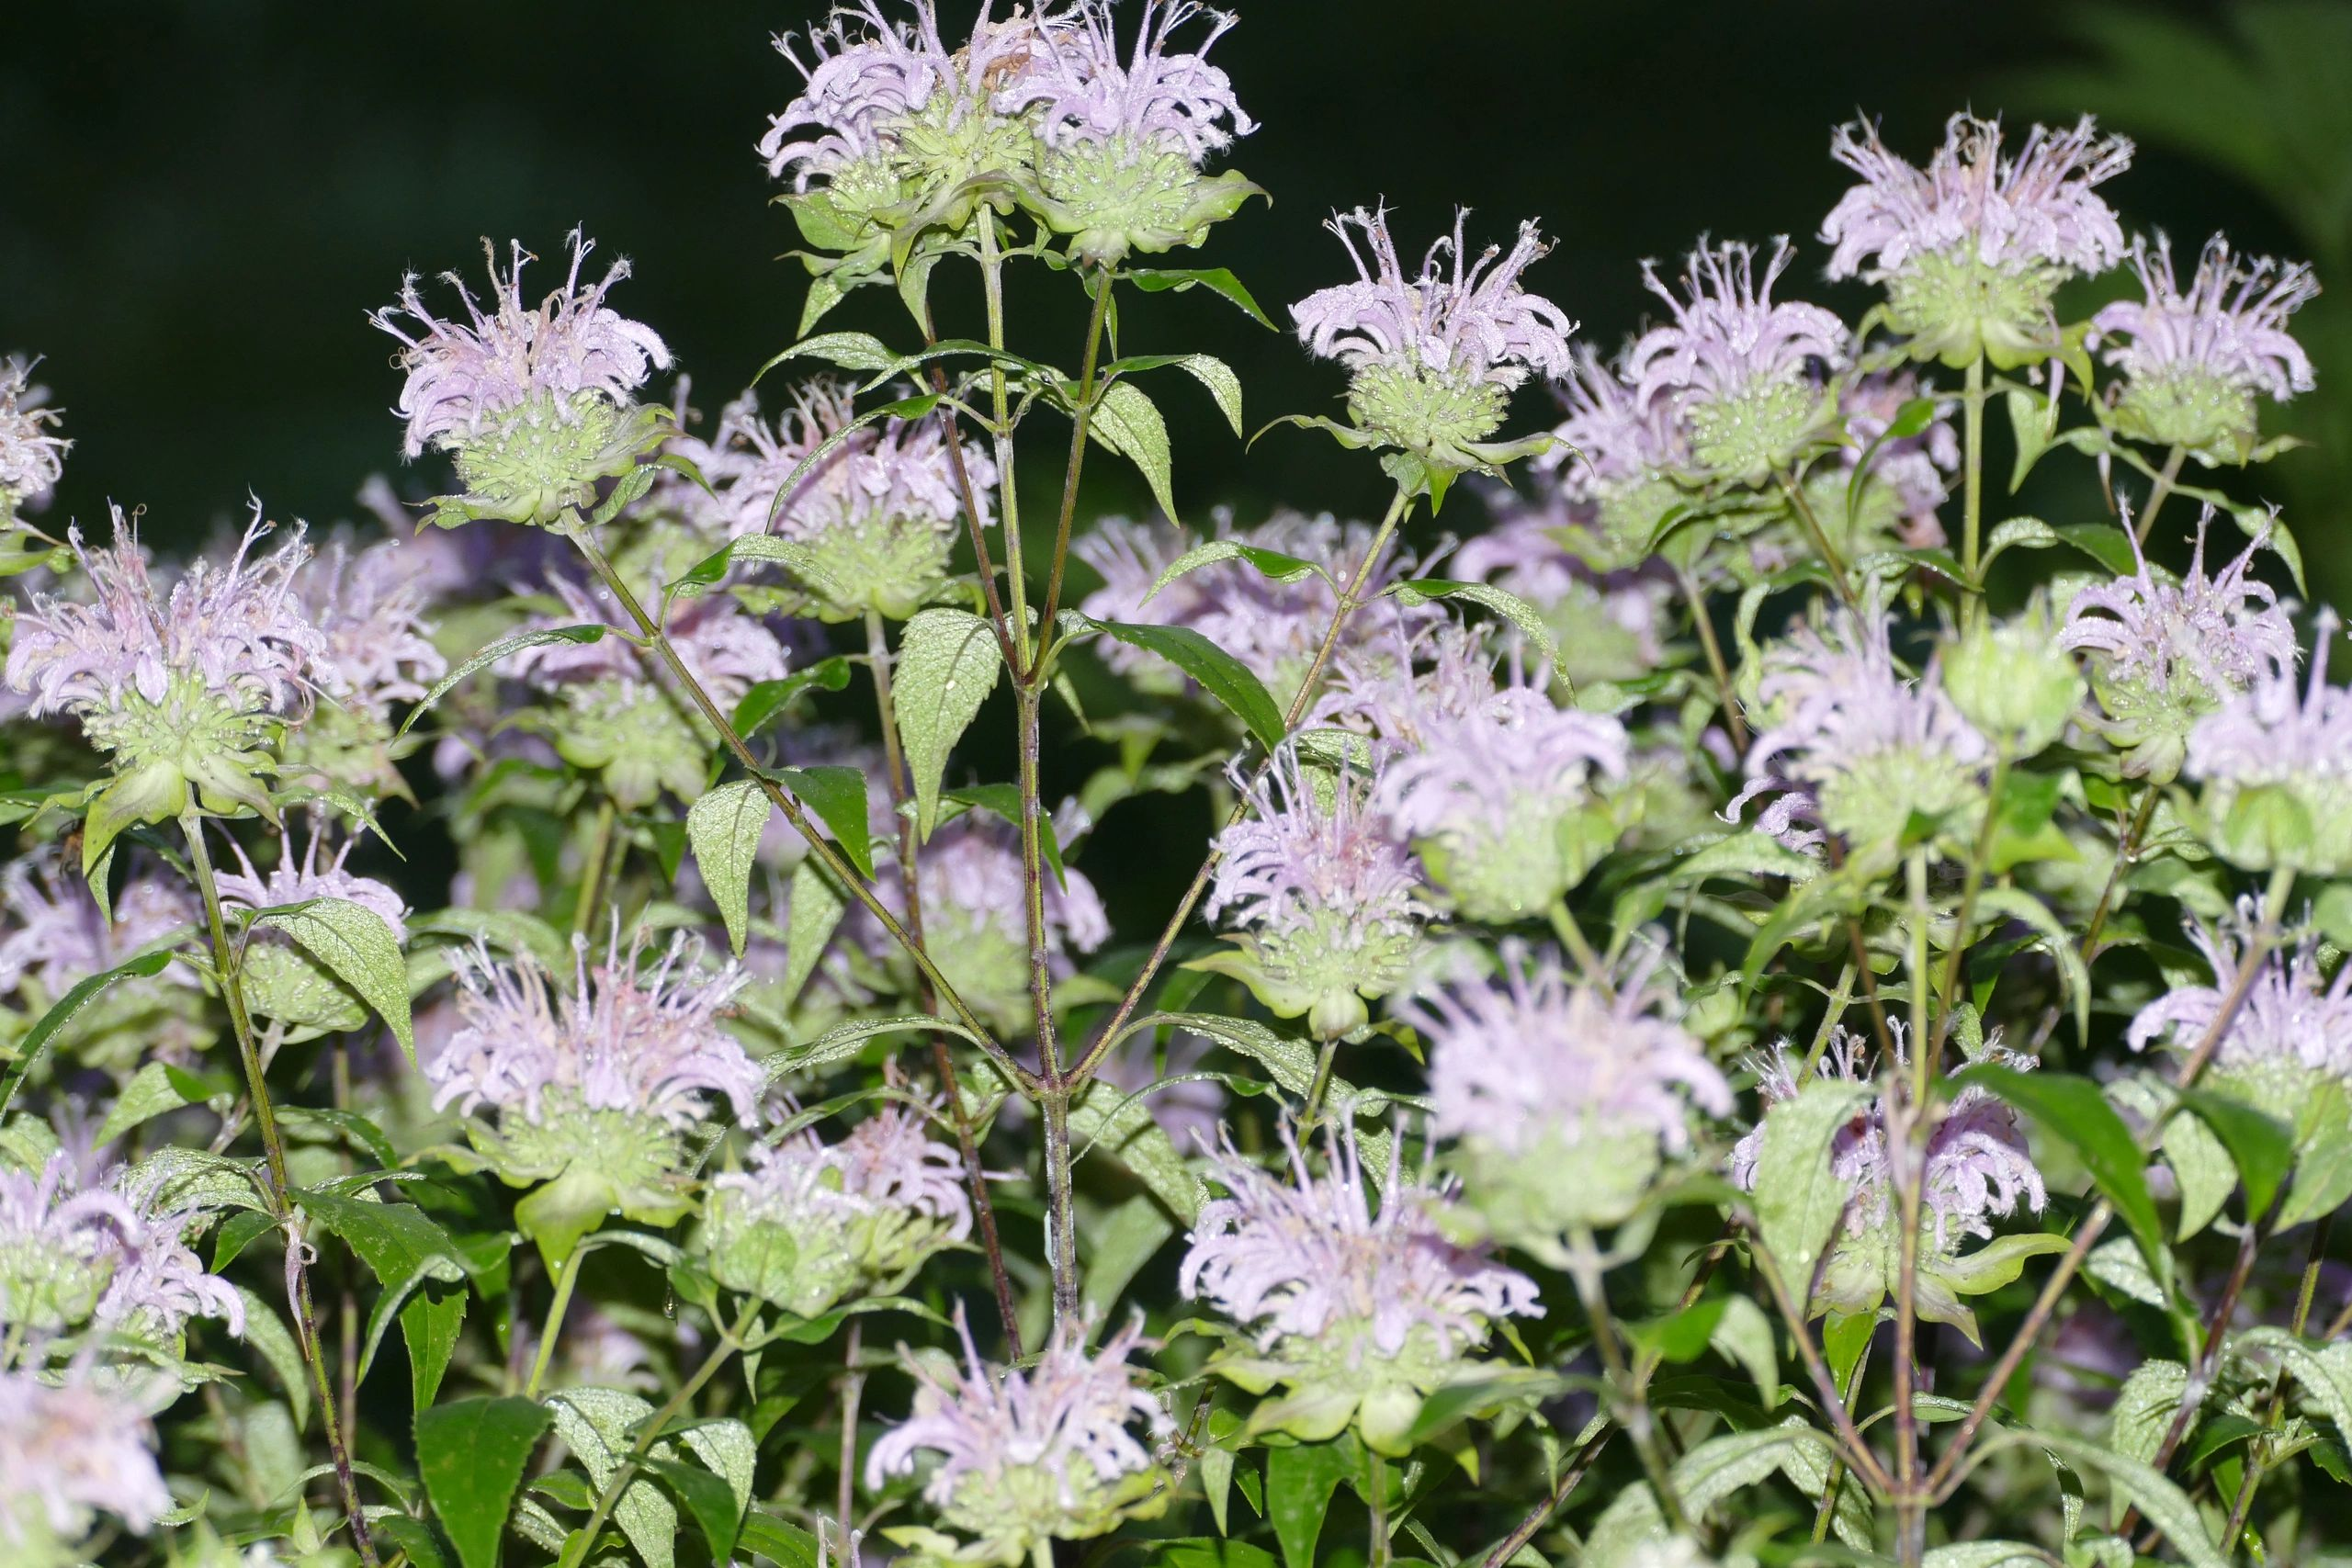 "{""blocks"":[{""key"":""52tco"",""text"":""Monarda bradburiana Horsemint, Eastern Beebalm -  potted plants email john@easywildflowers.com"",""type"":""unstyled"",""depth"":0,""inlineStyleRanges"":[],""entityRanges"":[],""data"":{}}],""entityMap"":{}}"